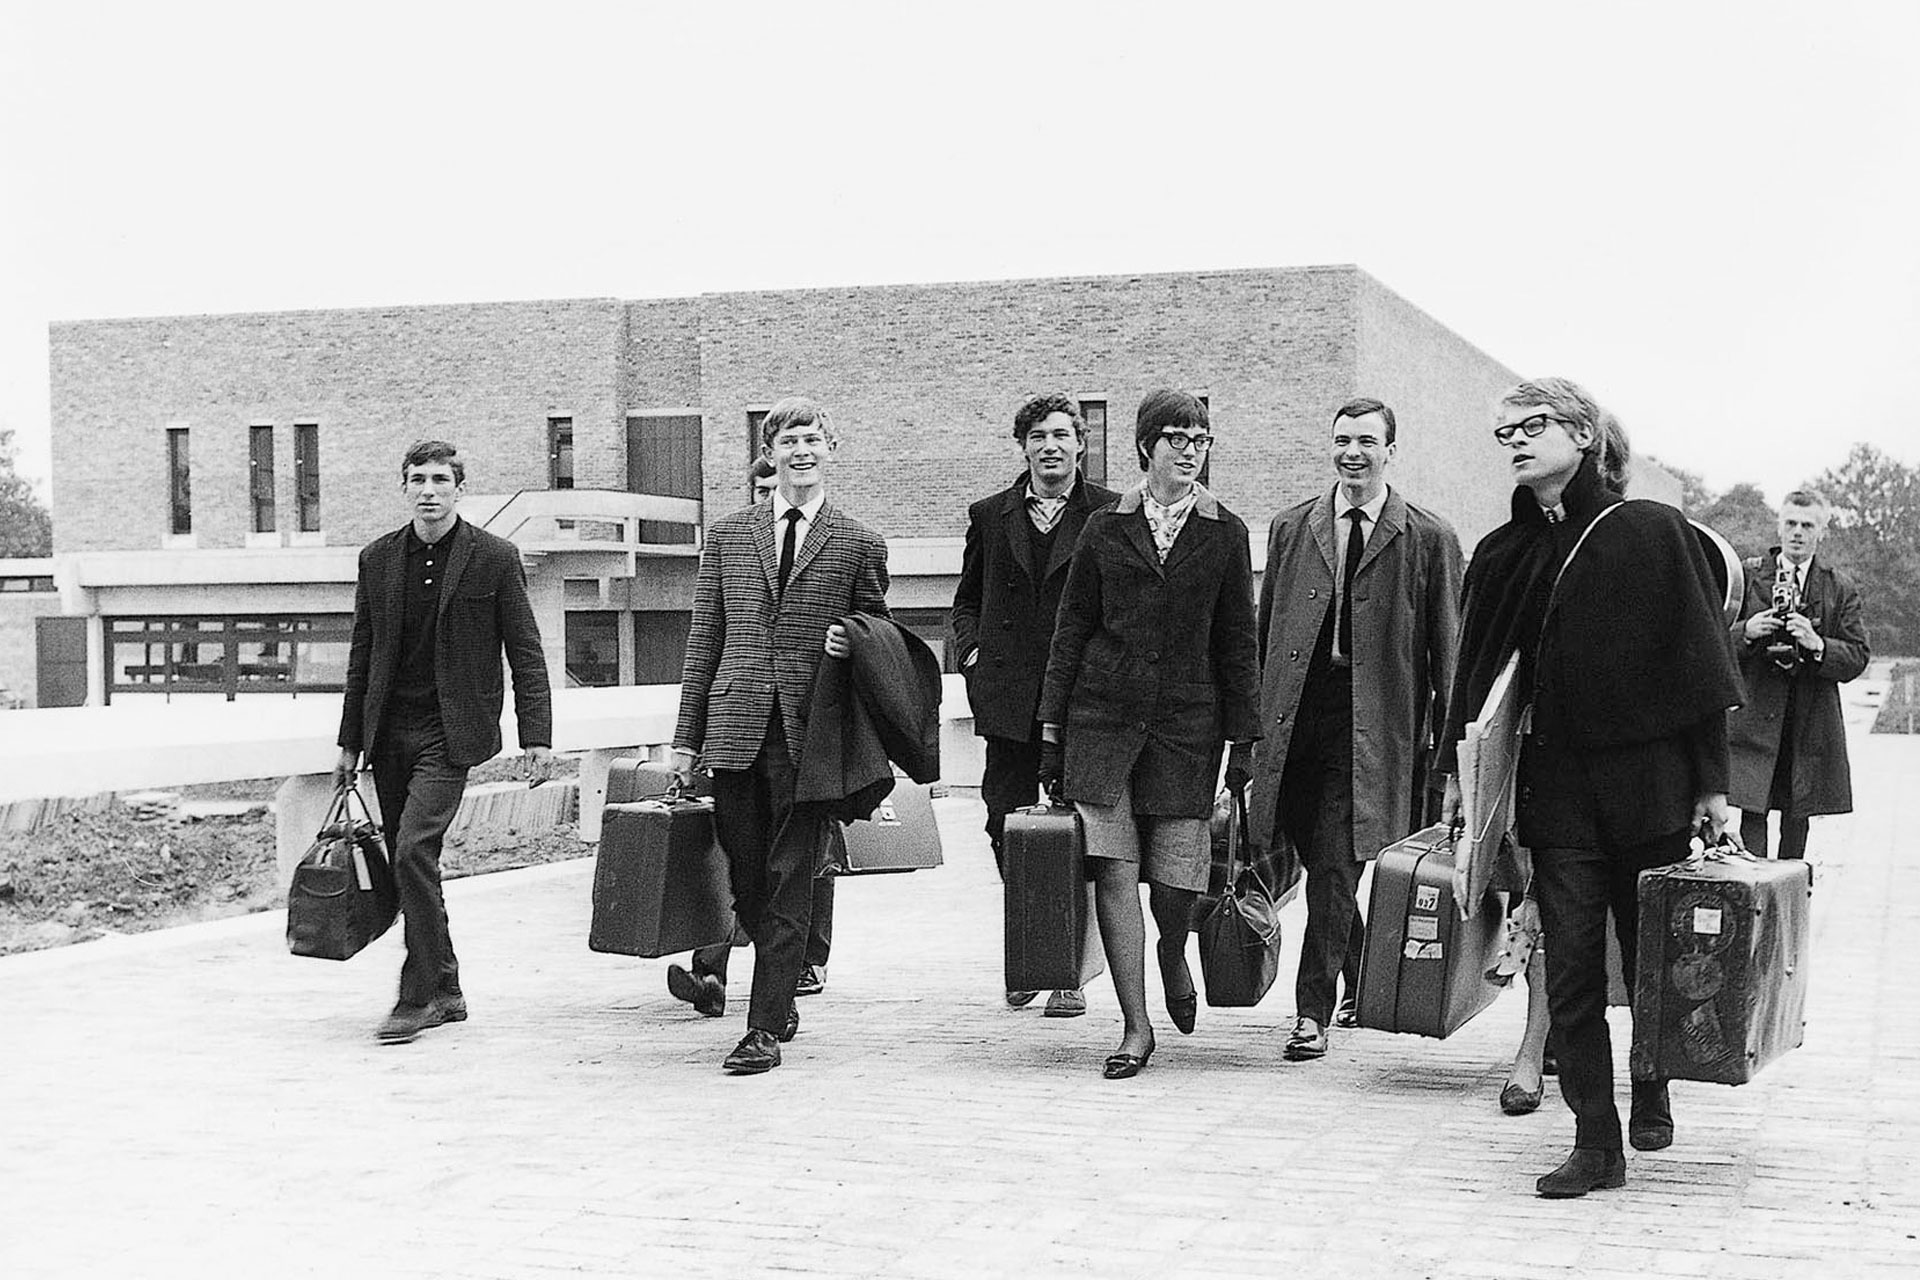 Pride in our past - first students arriving at the University